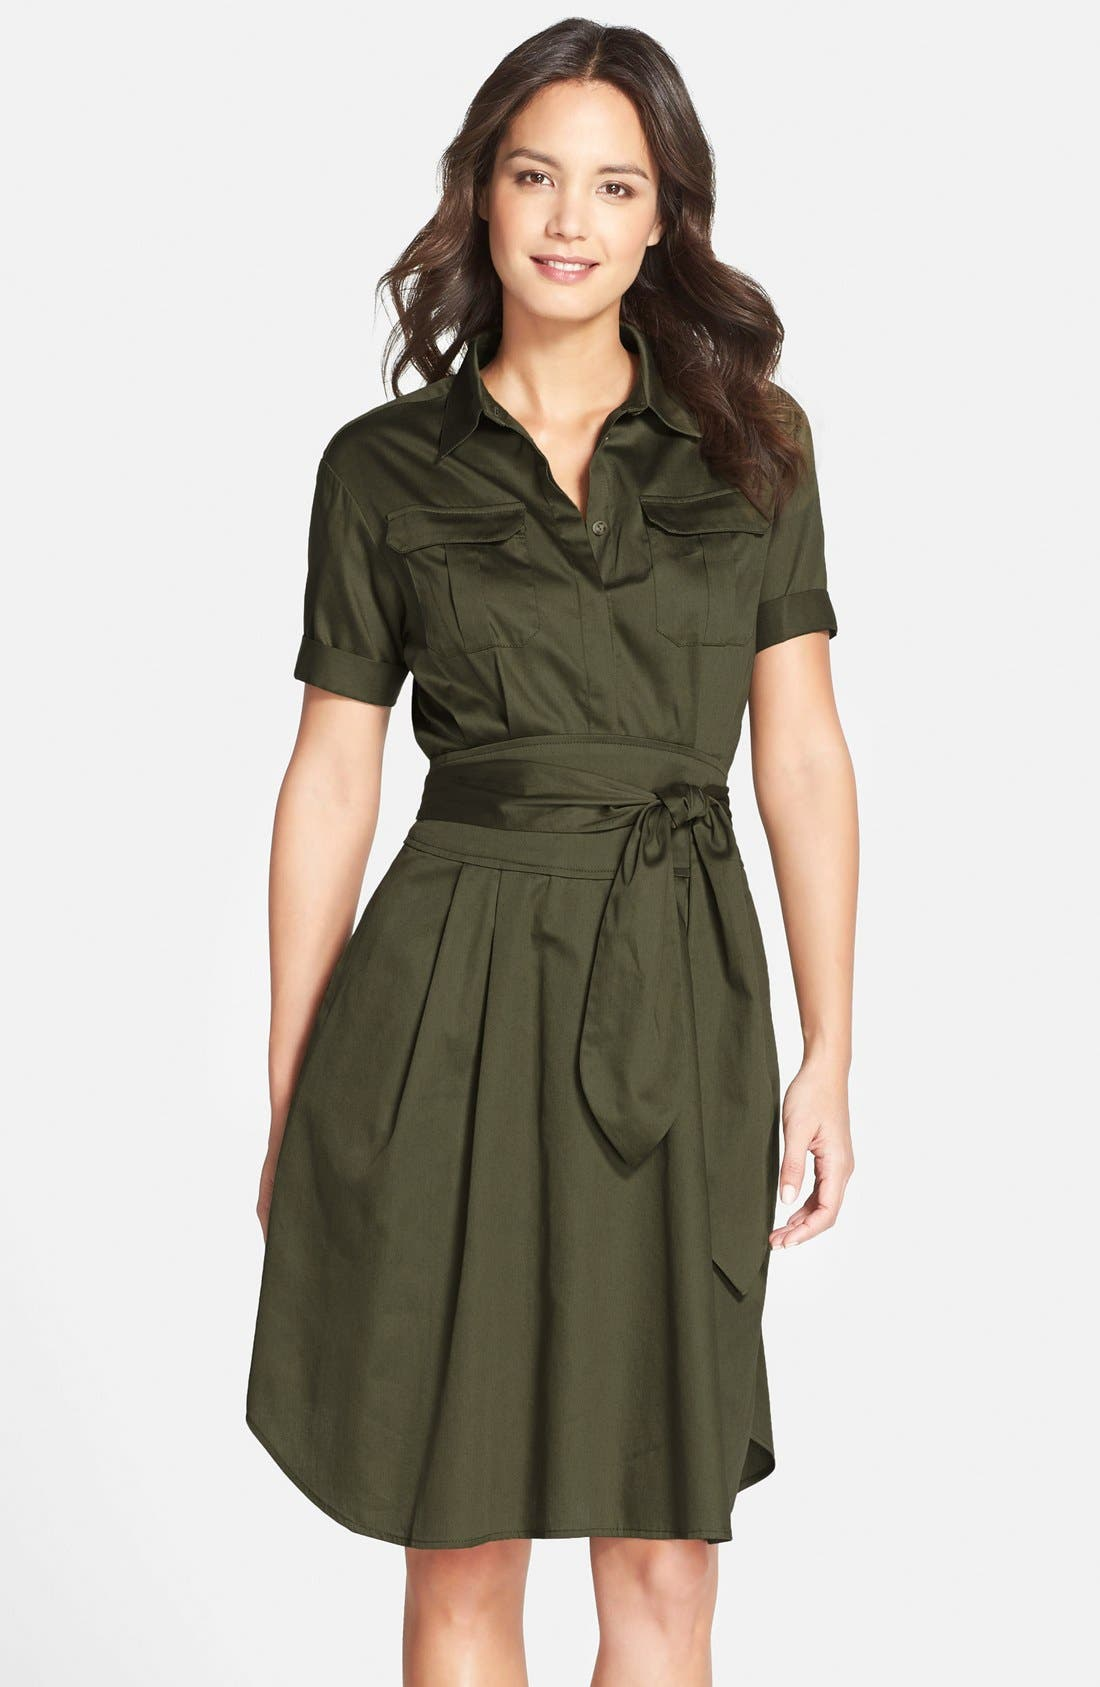 Alternate Image 1 Selected - Cynthia Steffe Maya Belted Shirtdress (Nordstrom Exclusive)